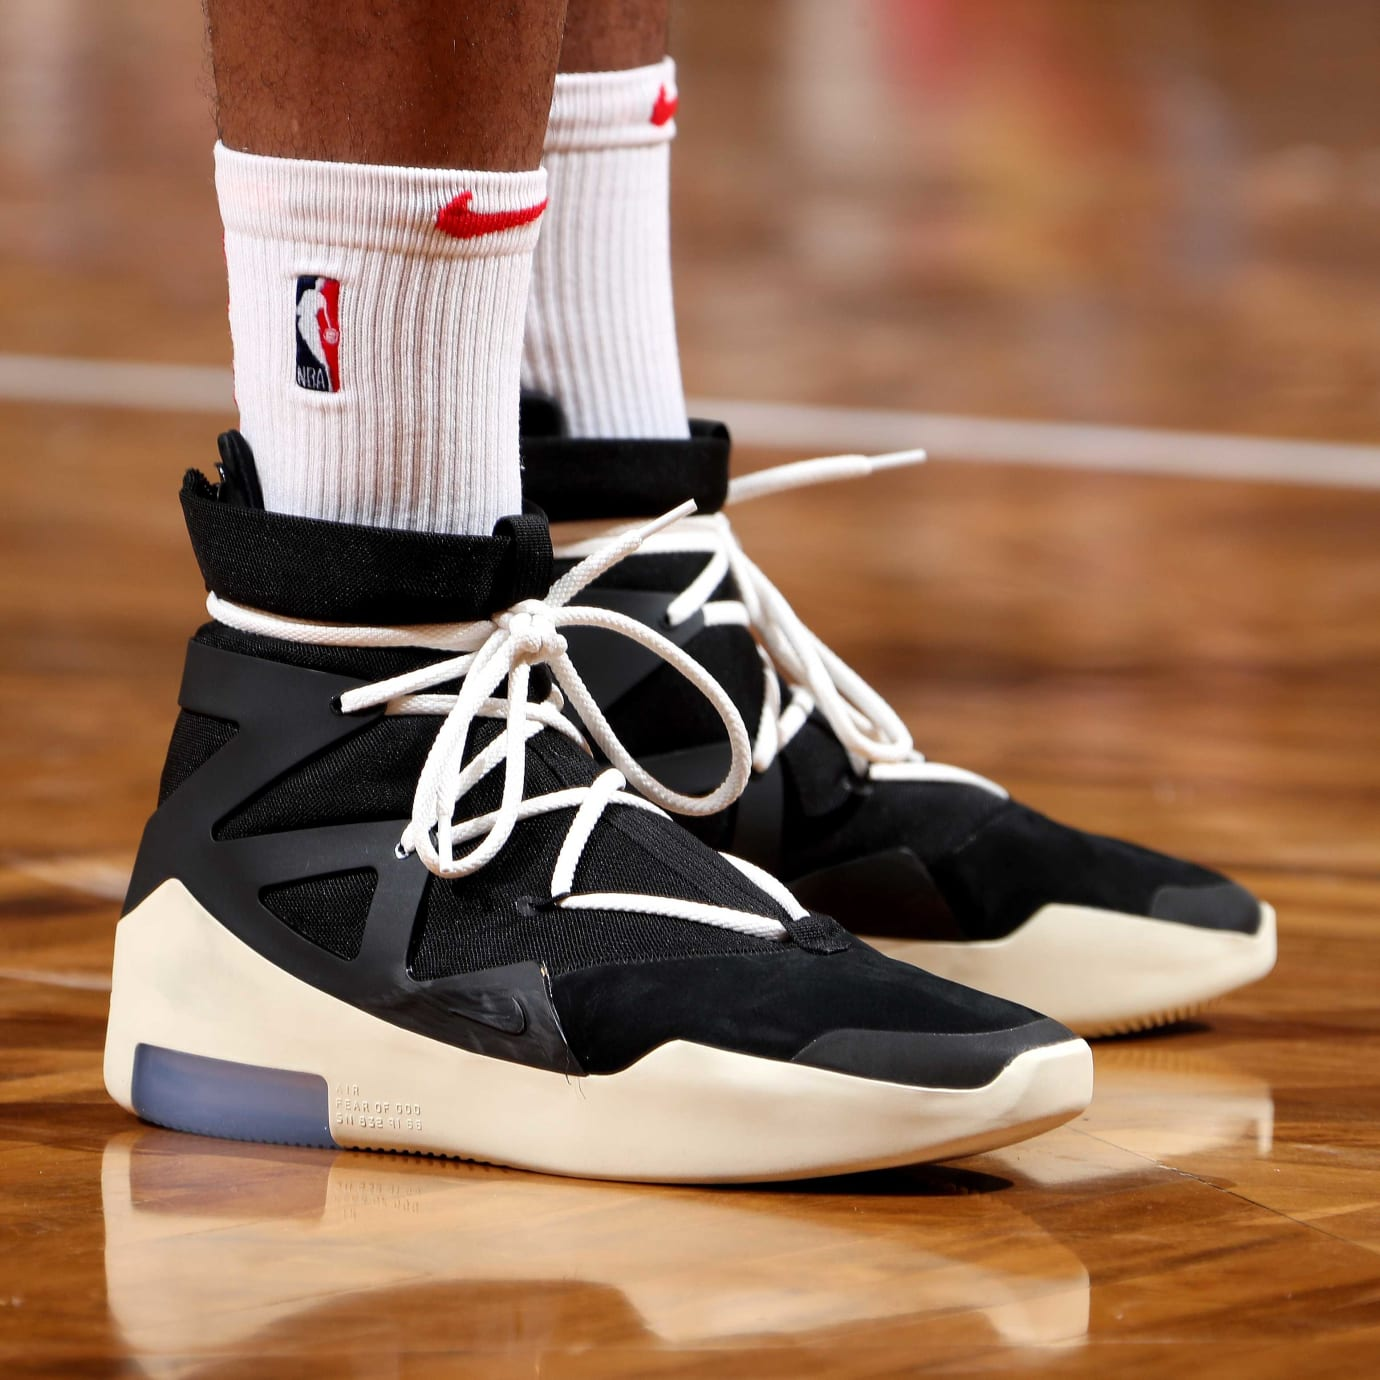 P.J. Tucker Nike Air Fear of God